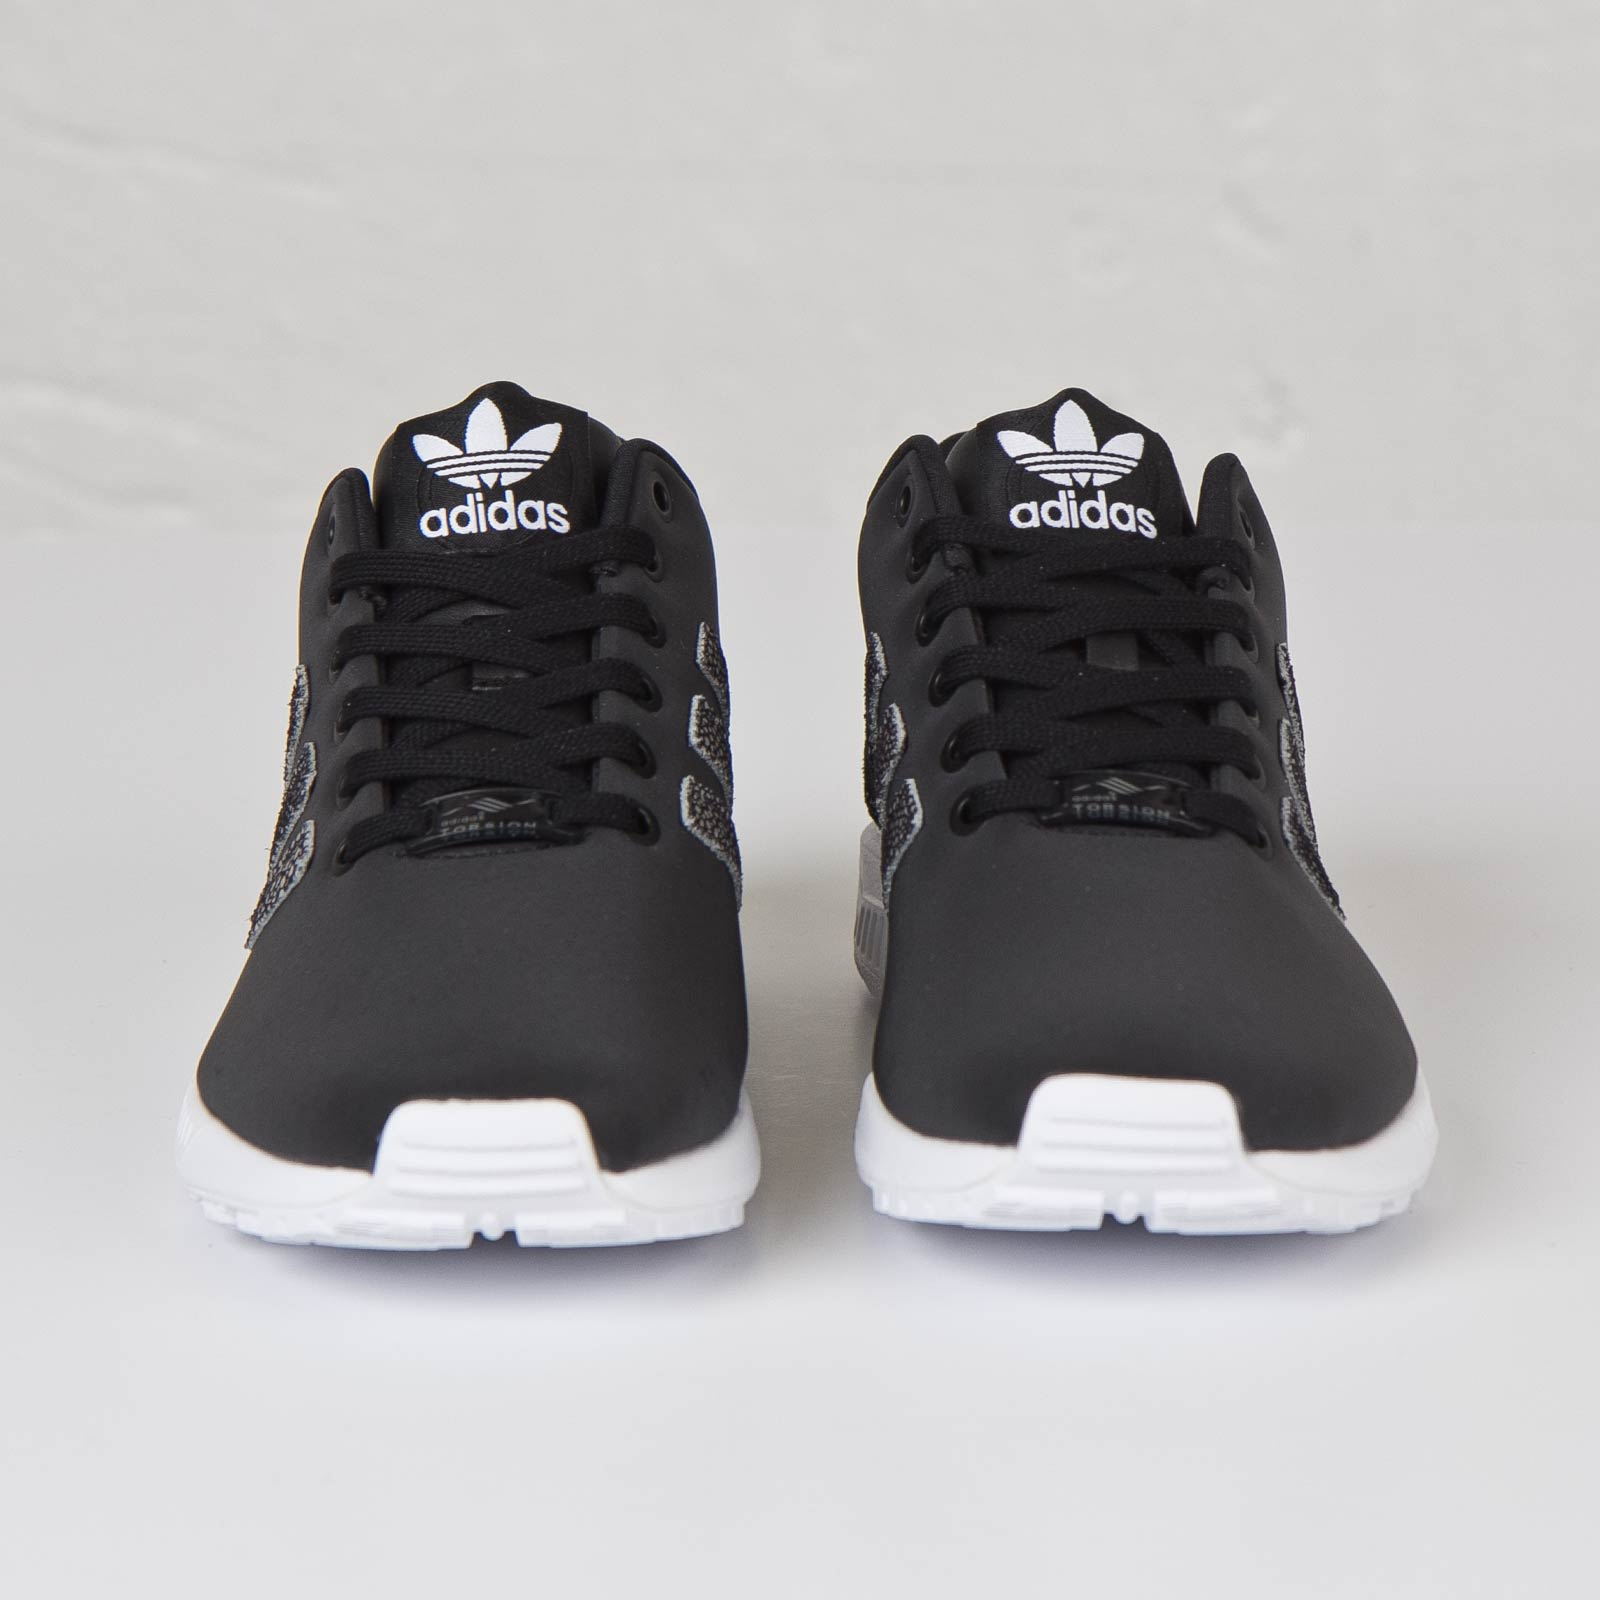 premium selection 39a59 9f0c6 adidas ZX Flux W - S81609 - Sneakersnstuff | sneakers ...